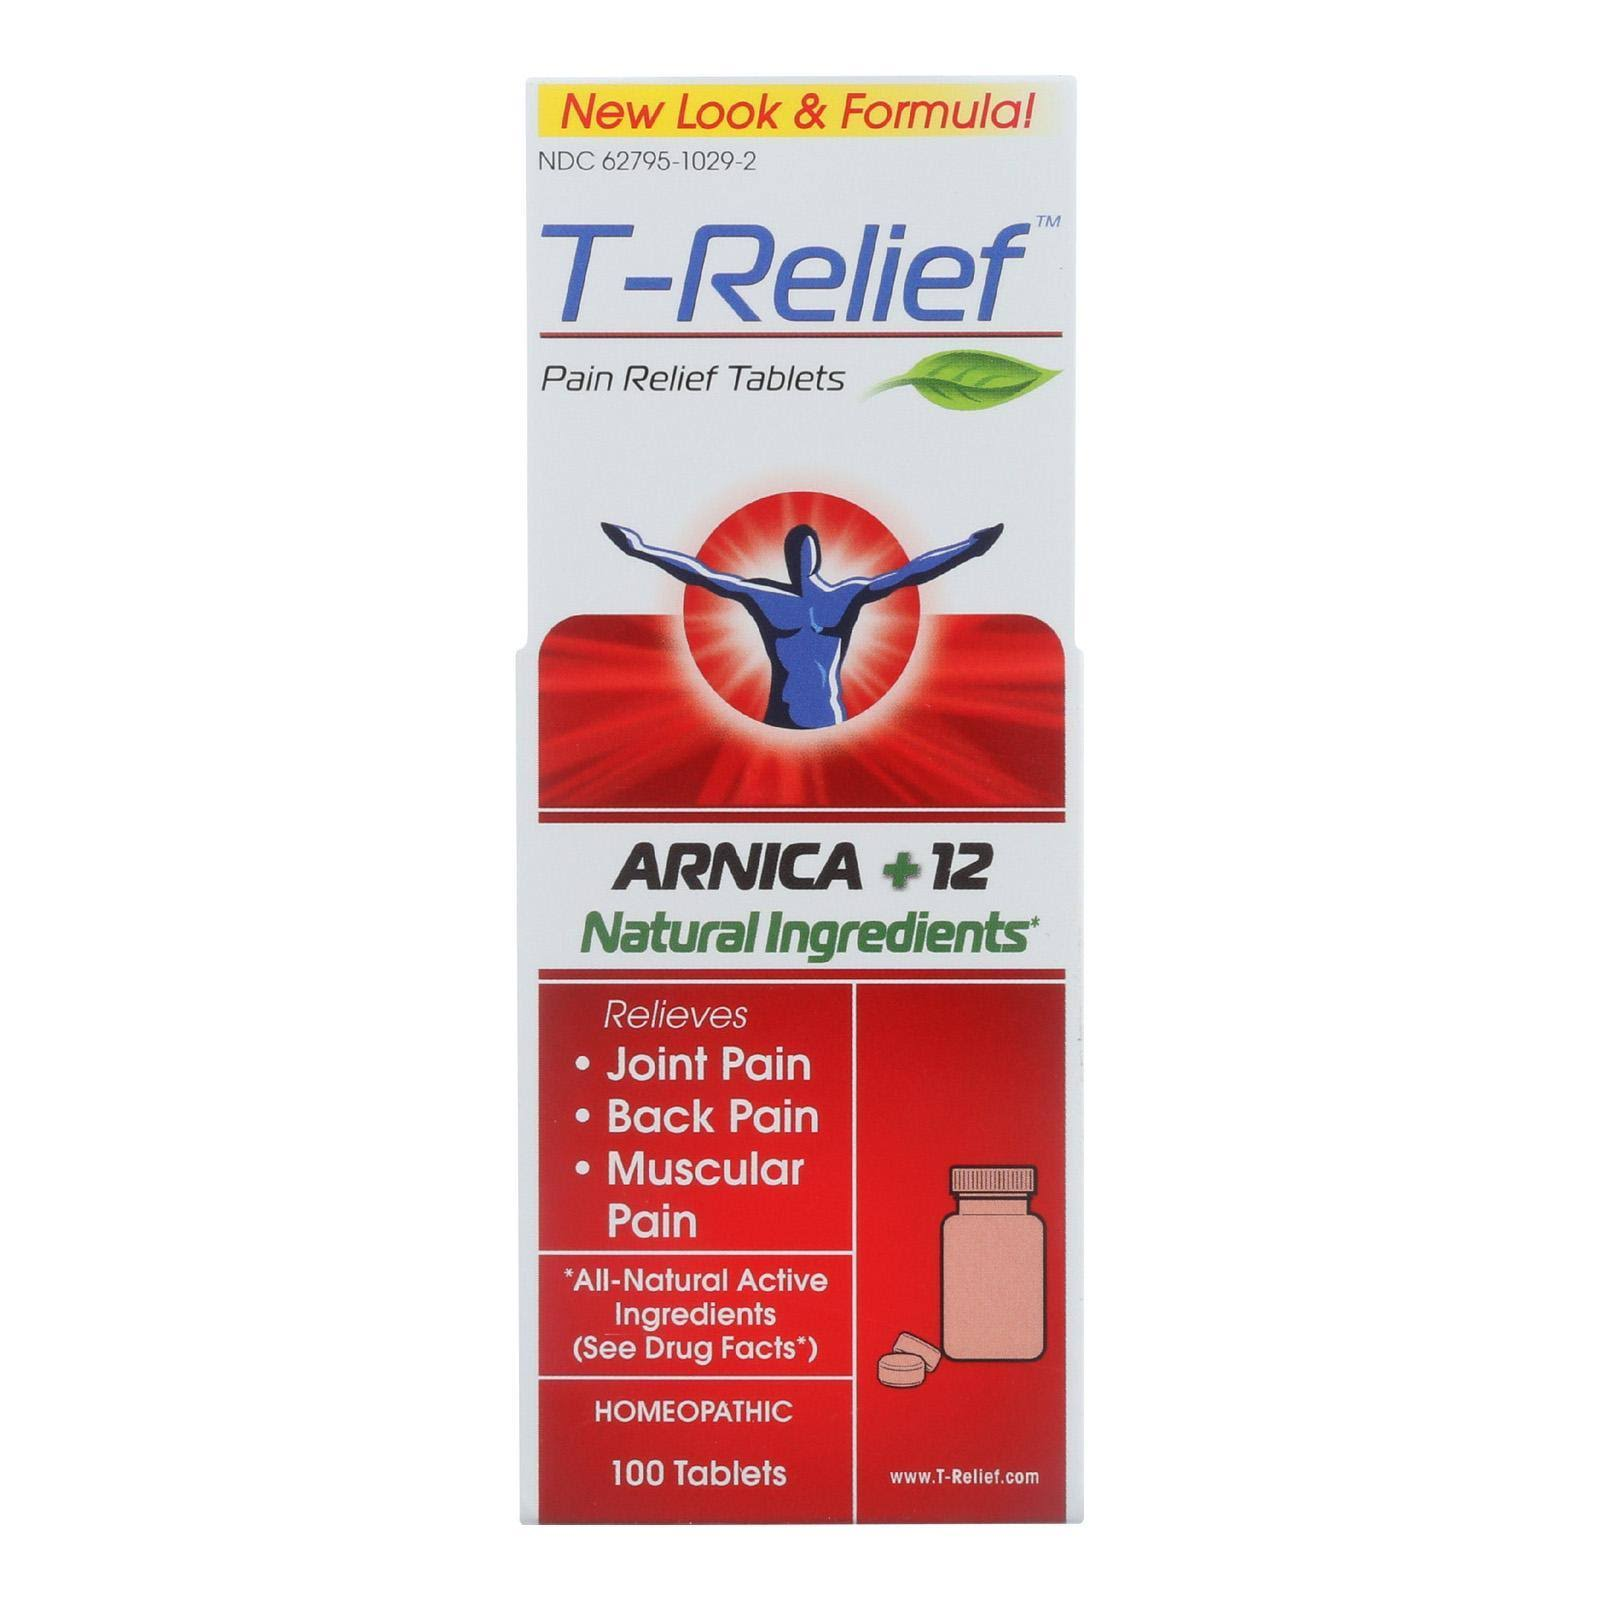 T Relief Pain Relief, Chewable Tablets - 100 tablets